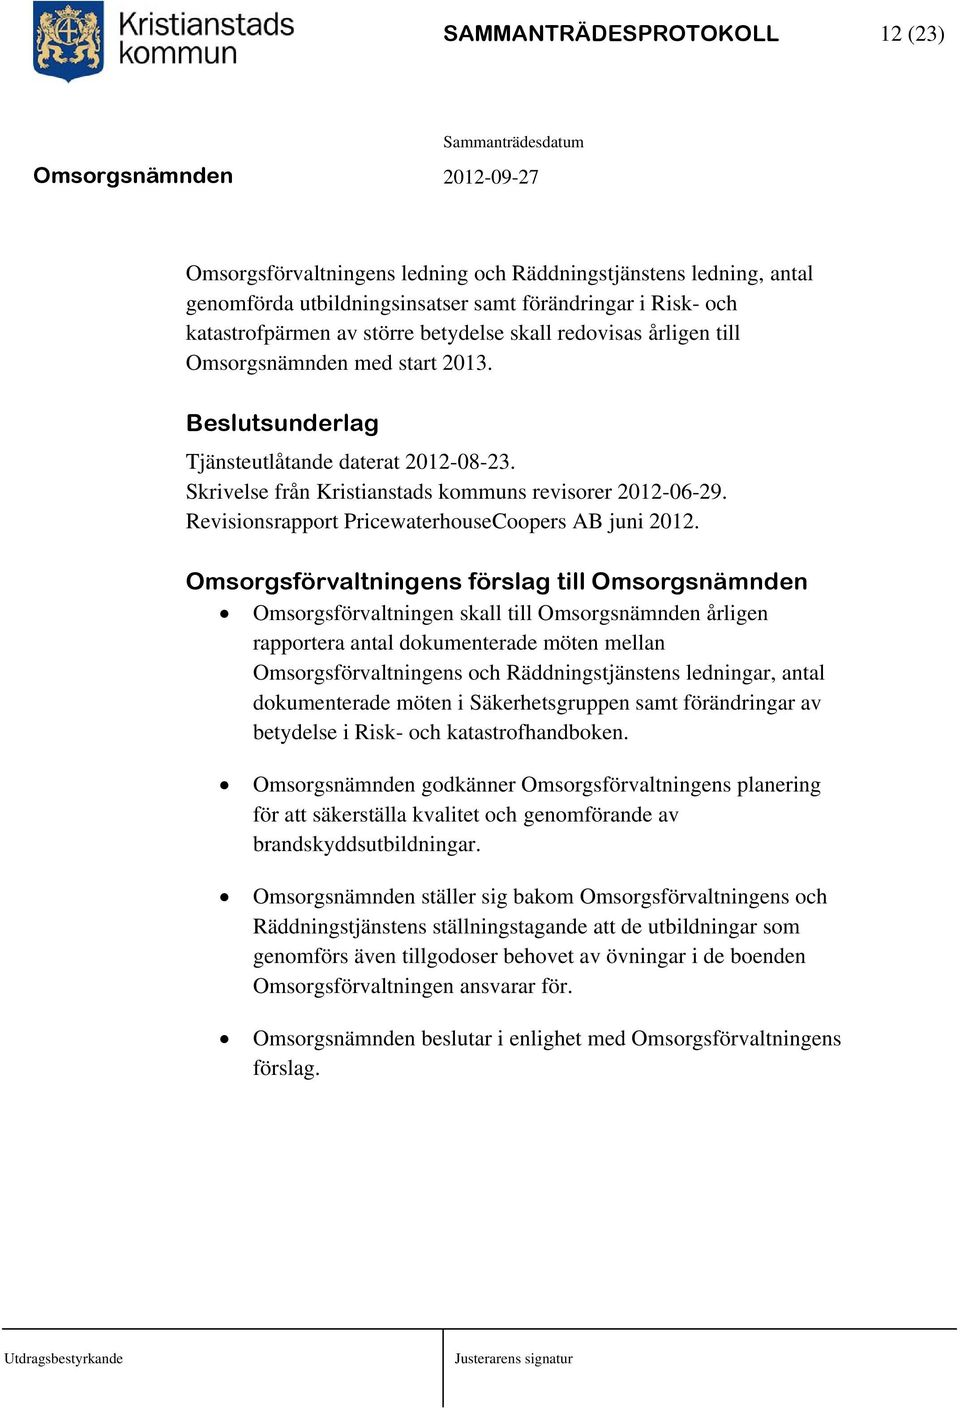 Revisionsrapport PricewaterhouseCoopers AB juni 2012.